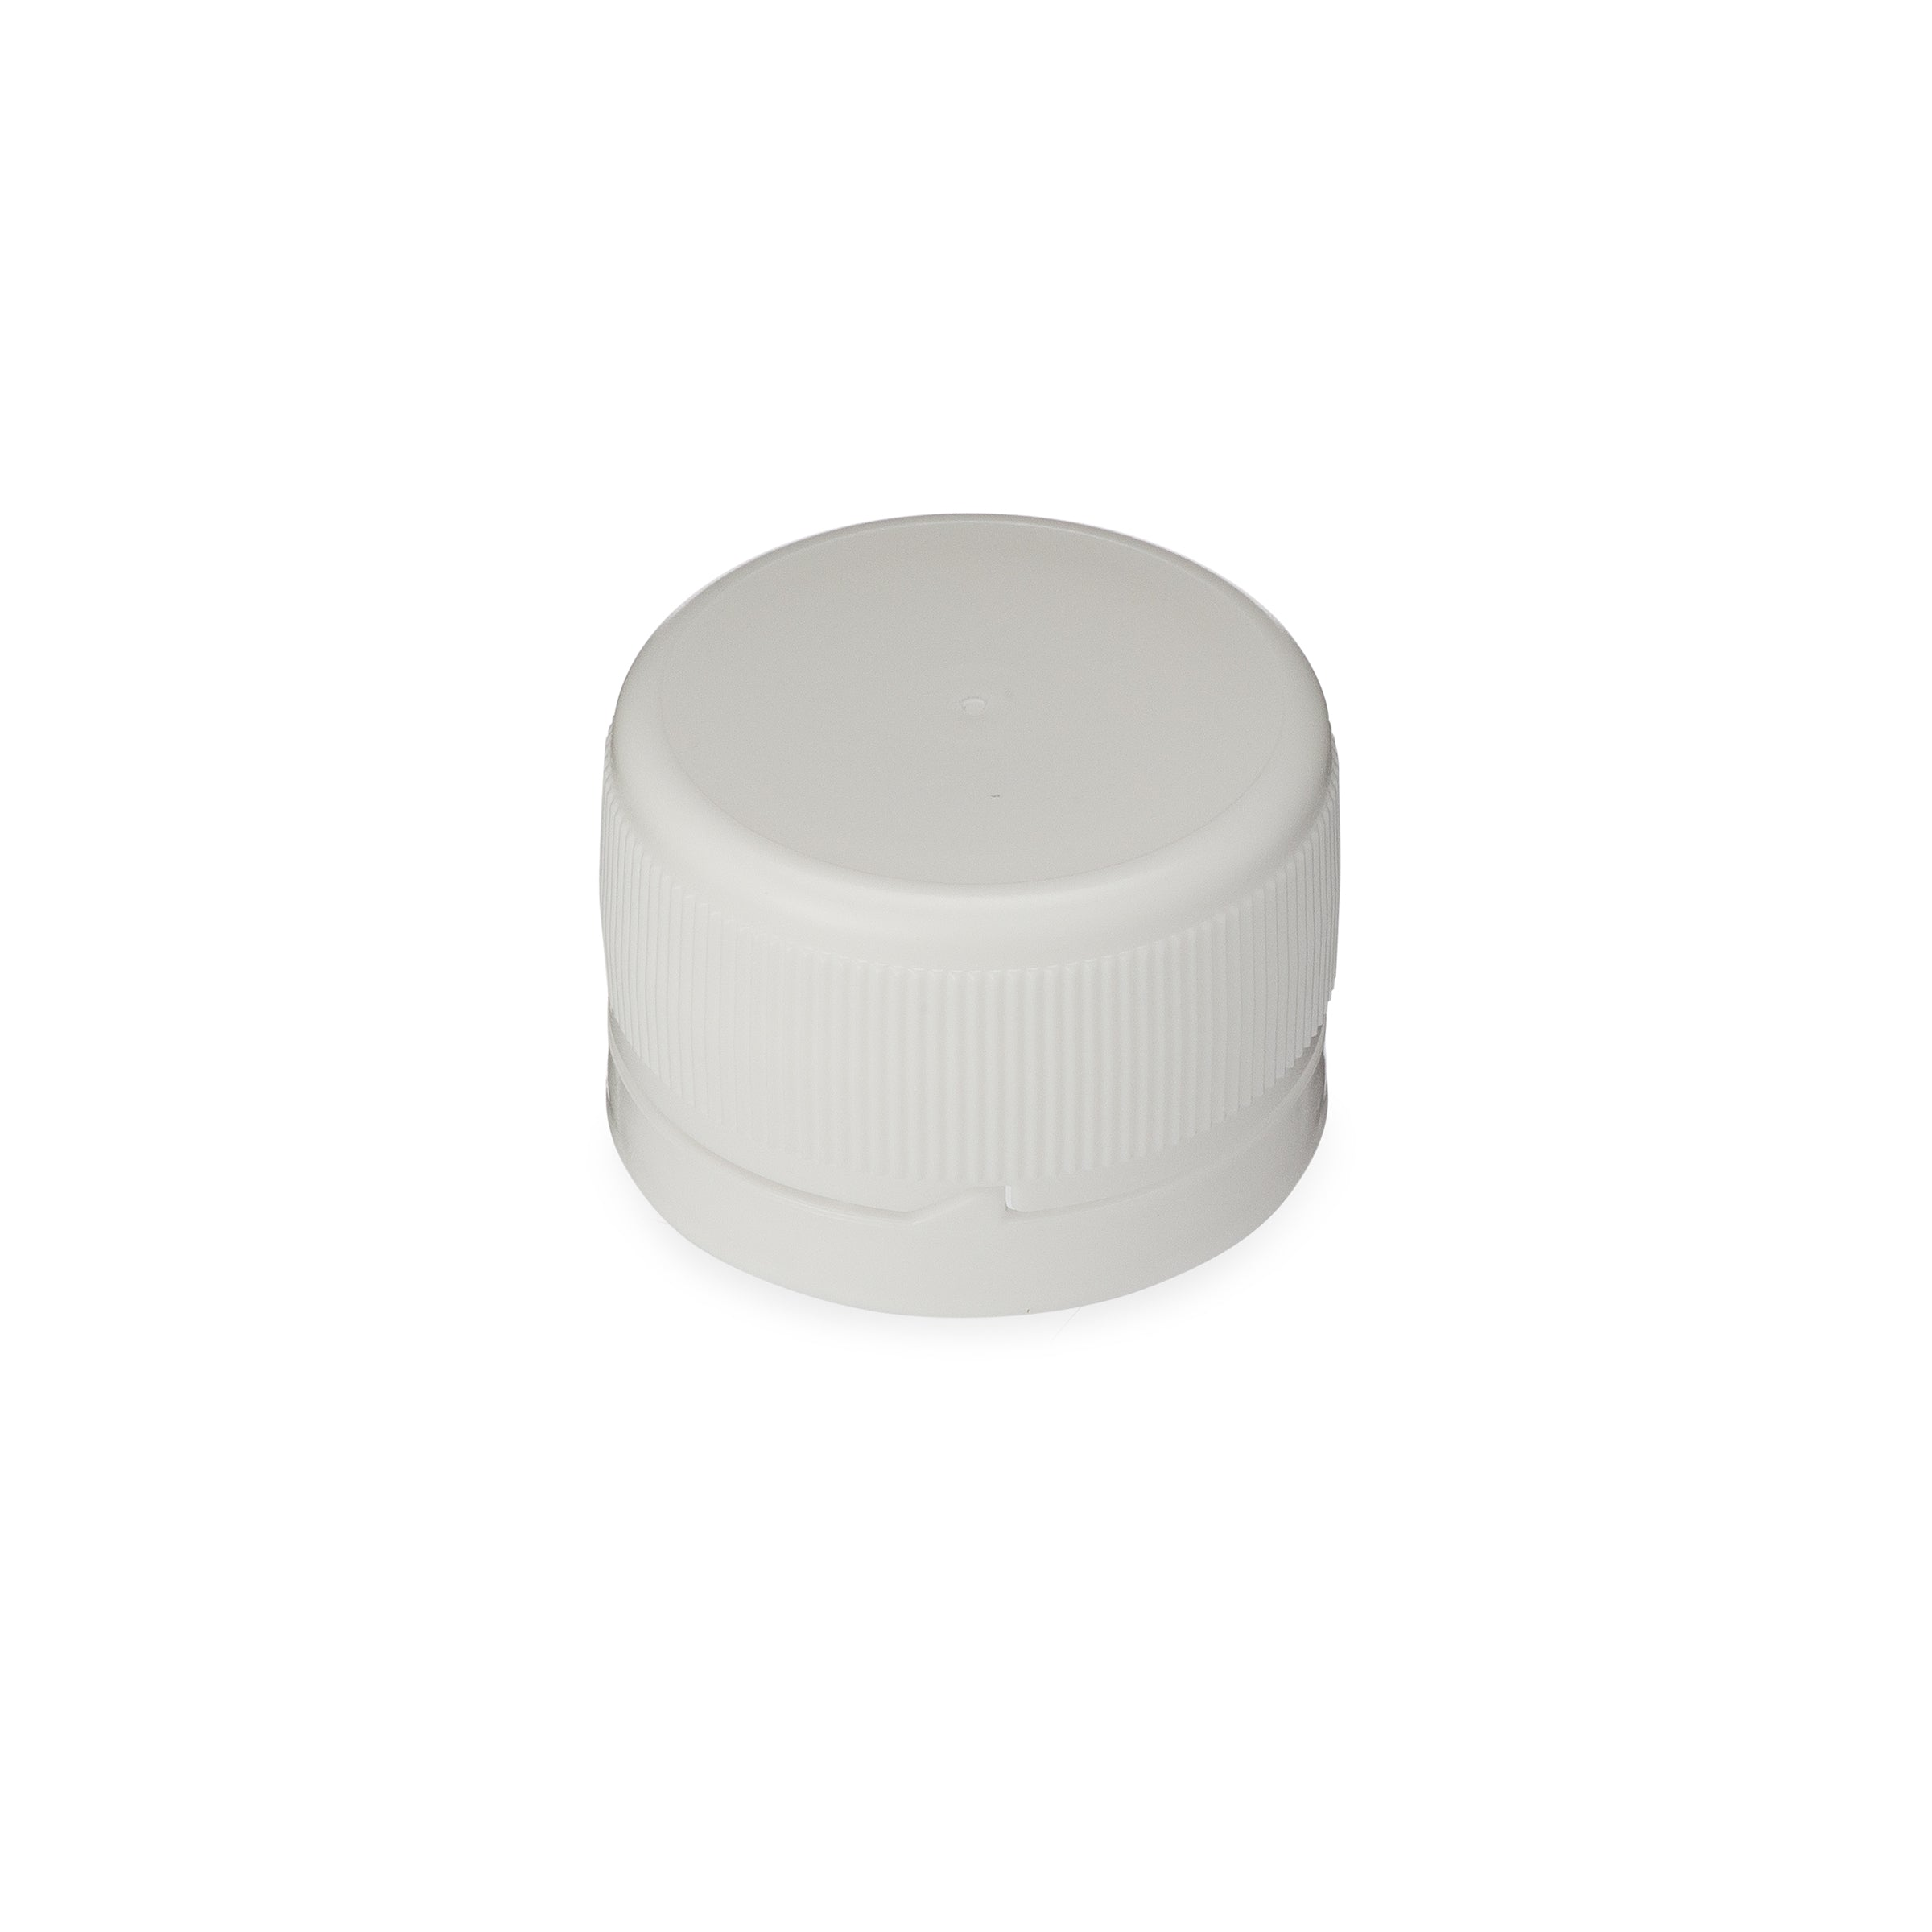 Tamper Evident PP28 Syrup Cap, Self Sealing, With Liner - 2-11008